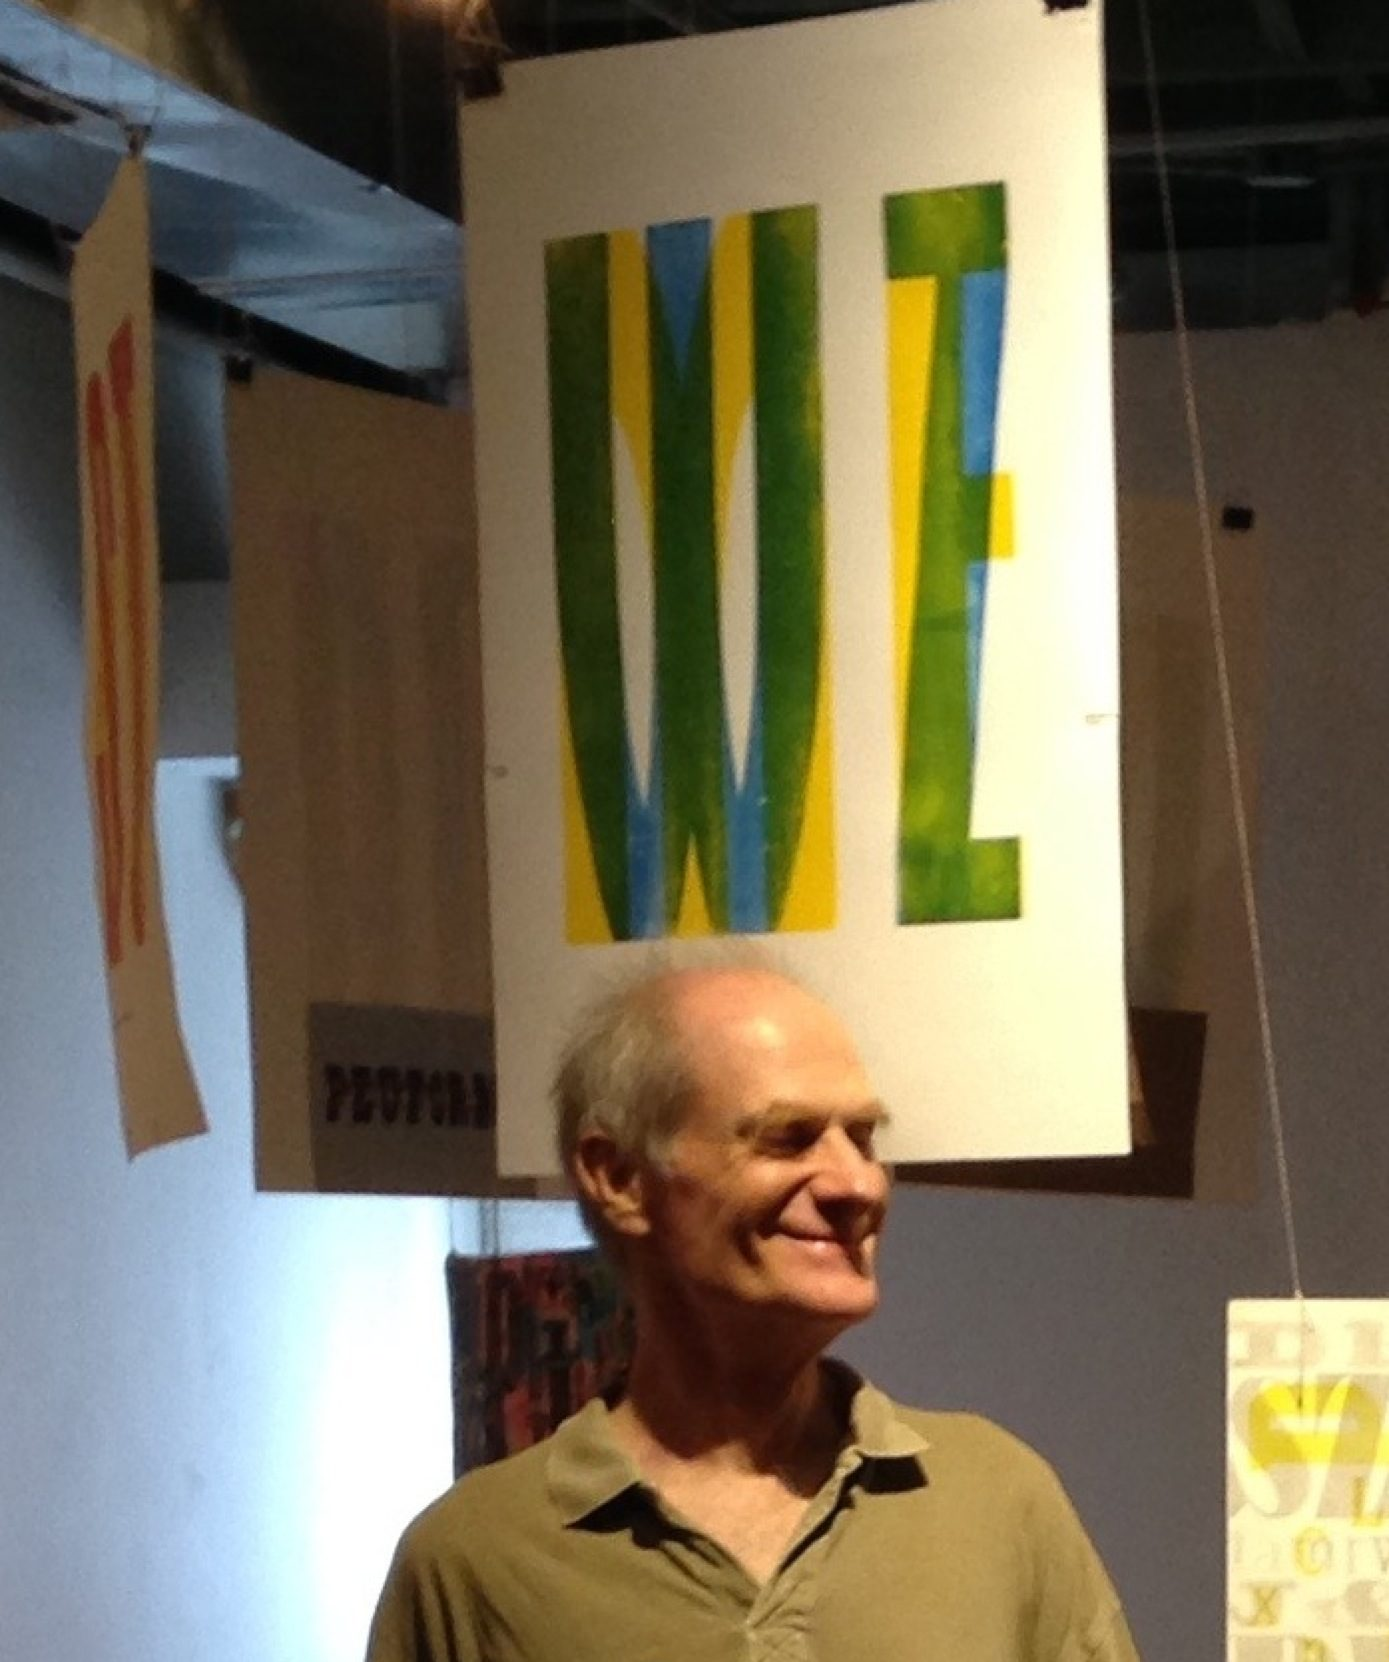 Artist Dikko Faust is standing in a green shirt under a layered letterpress print with misc. letters on it.